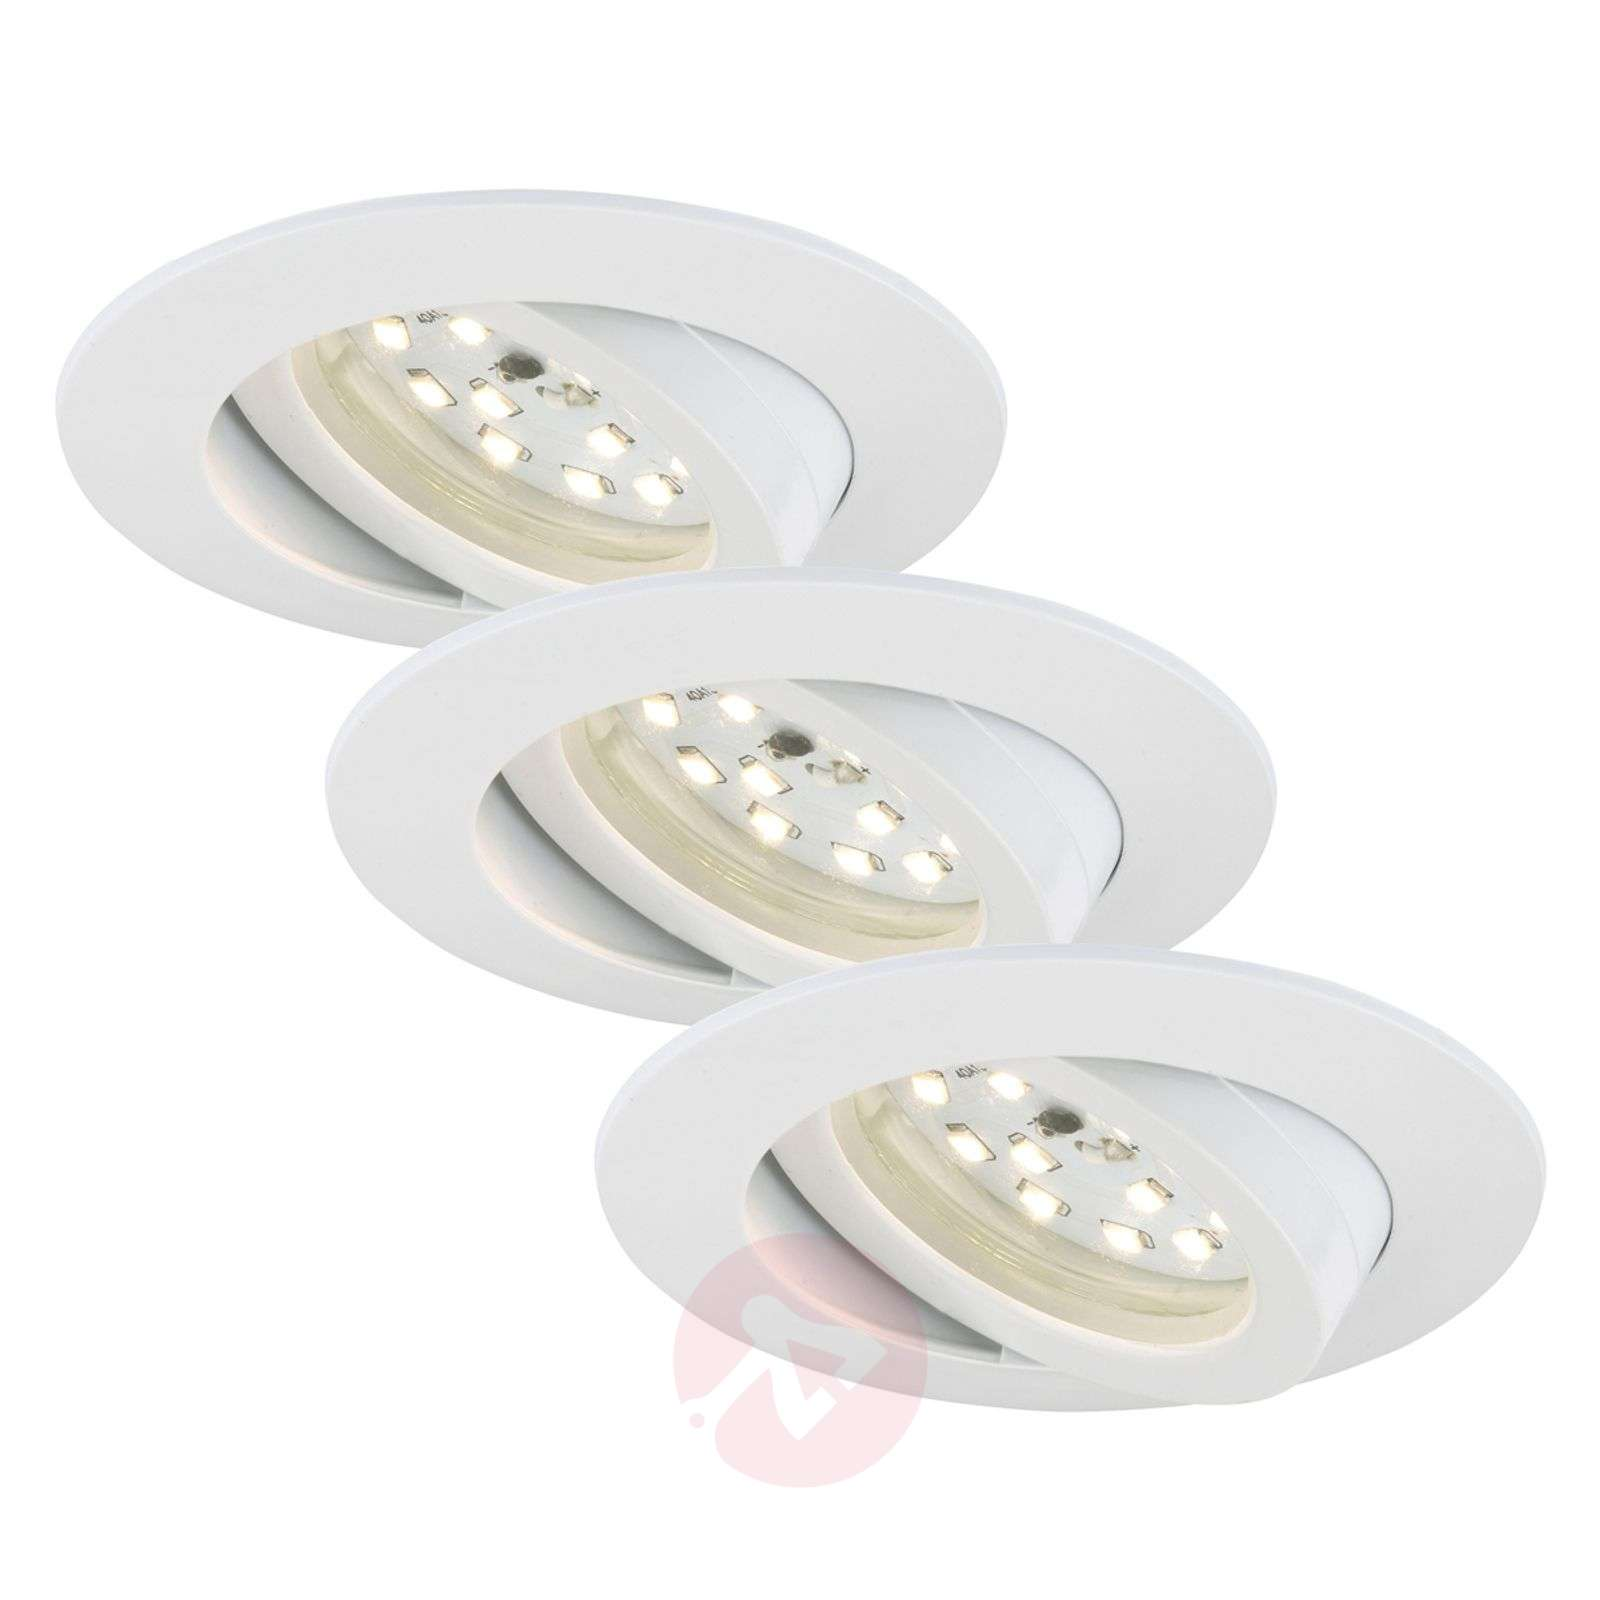 Lámpara empotrada LED Bert, set de 3-1510328-03